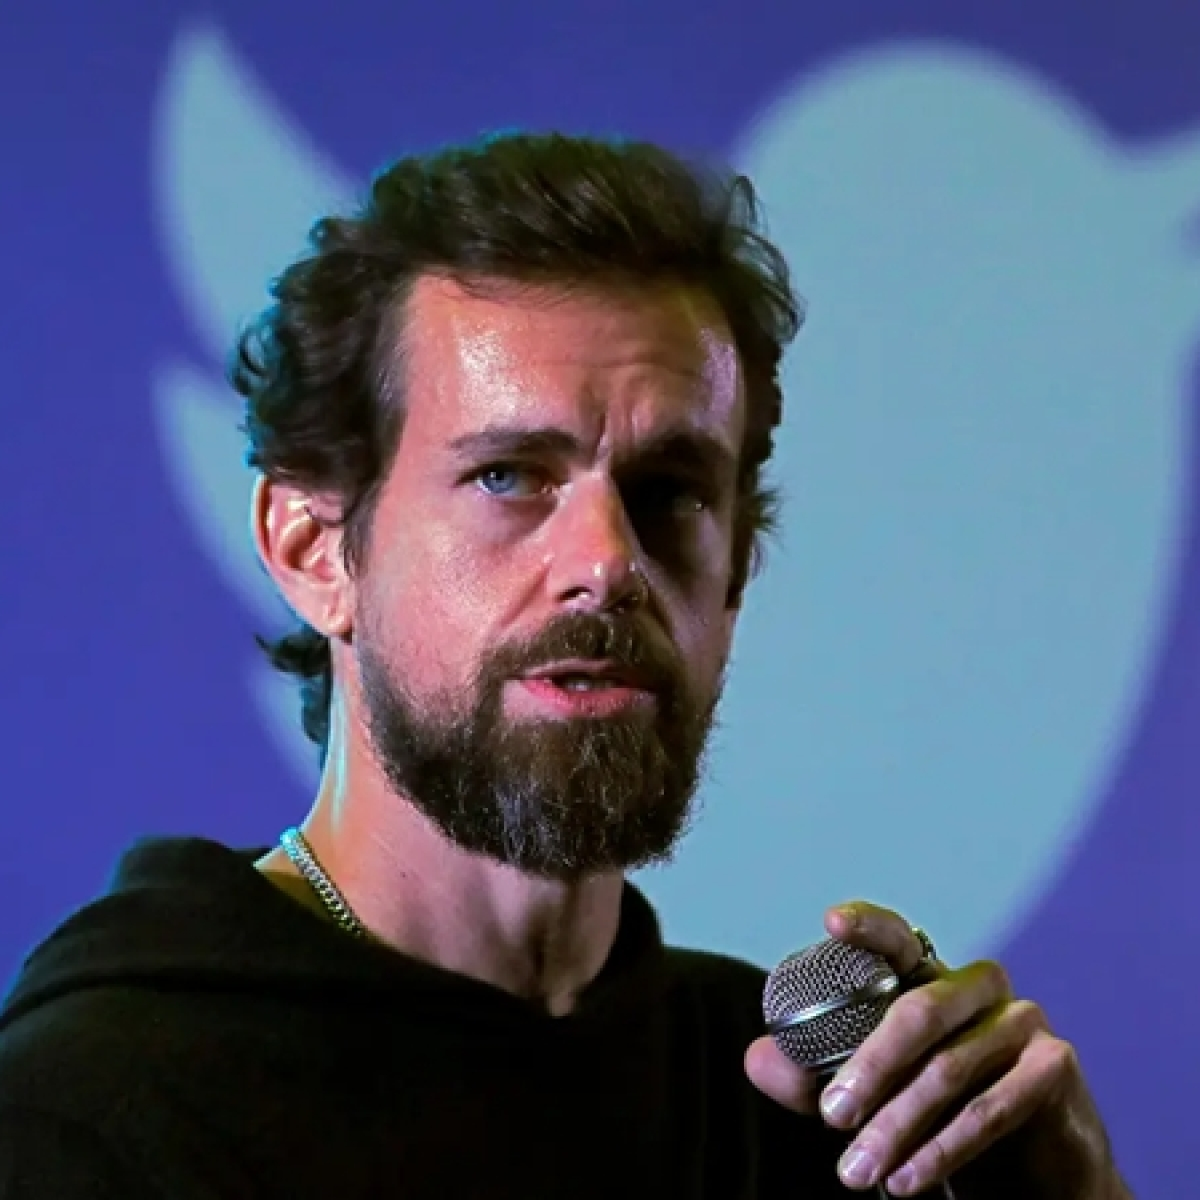 FPJ Fast facts: Here's what we know so far about the Twitter mass-hacking